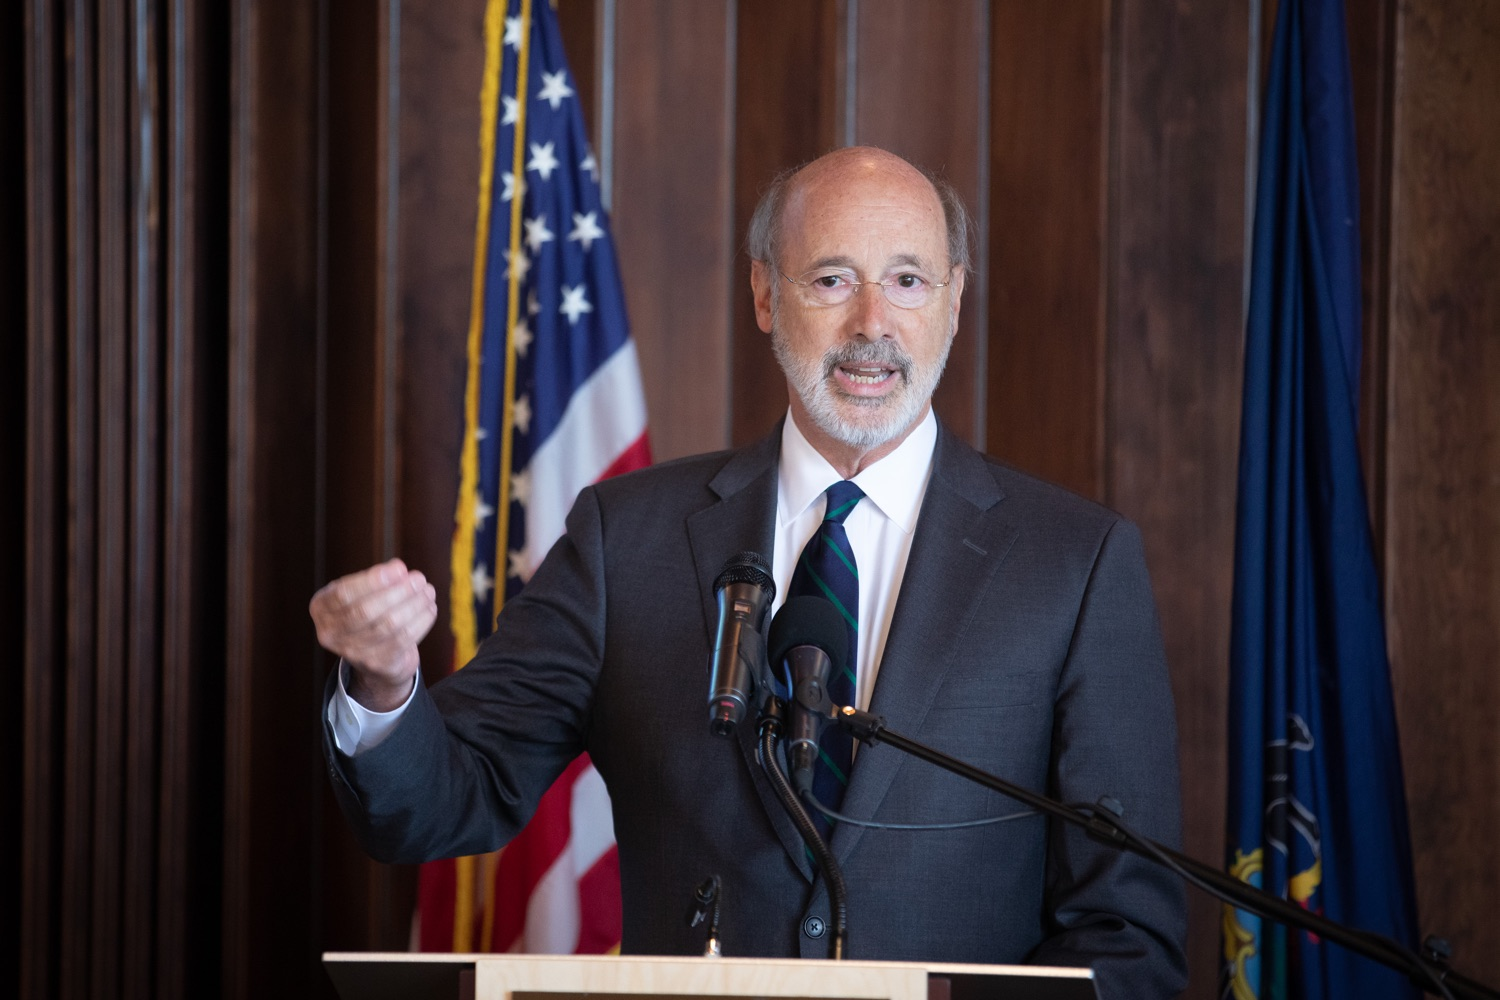 "<a href=""http://filesource.abacast.com/commonwealthofpa/photo/17467_gov_opioids_dz_018.JPG"" target=""_blank"">⇣ Download Photo<br></a>Boalsburg, PA  Governor Tom Wolf addressing the summit.  Governor Tom Wolf today kicked off his administrations first Opioid Command Center Opioid Summit: Think Globally, Act Locally, which brought together 200 individuals helping their communities fight the opioid crisis, including community organizations, non-profits, schools, health care workers, addiction and recovery specialists, and families affected by the opioid crisis.  Tuesday, October 1, 2019"